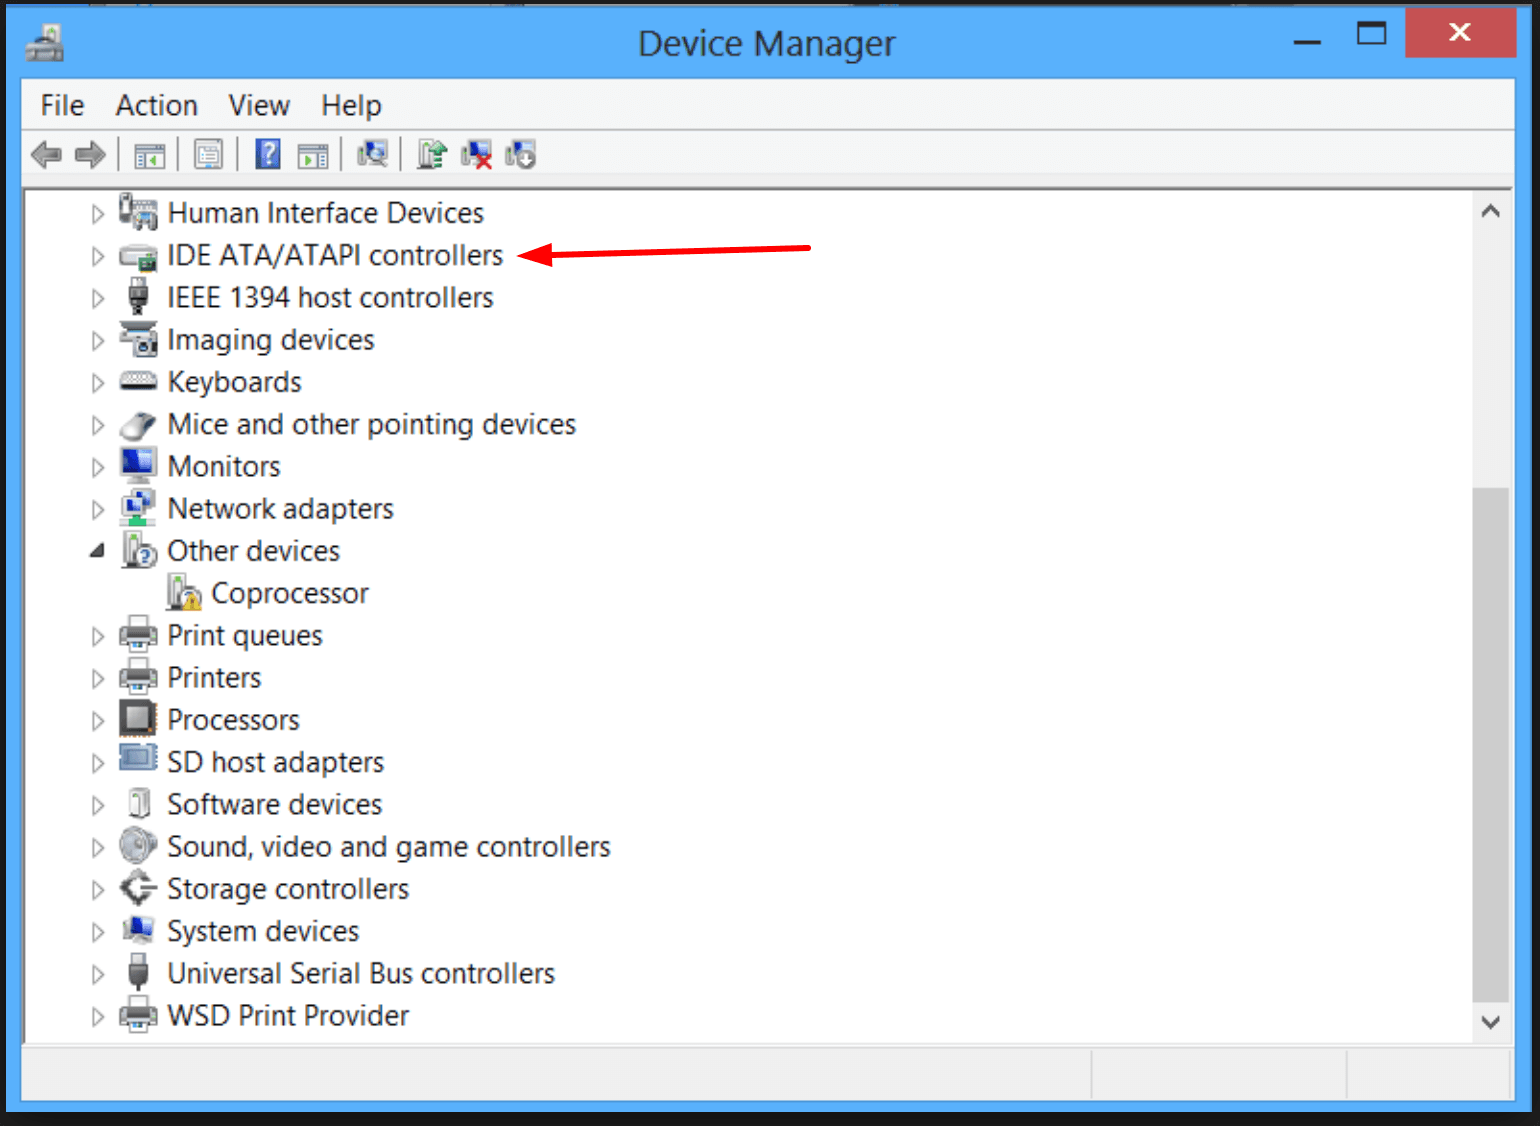 Device Manager Windows 10 - DPC Watchdog Violation